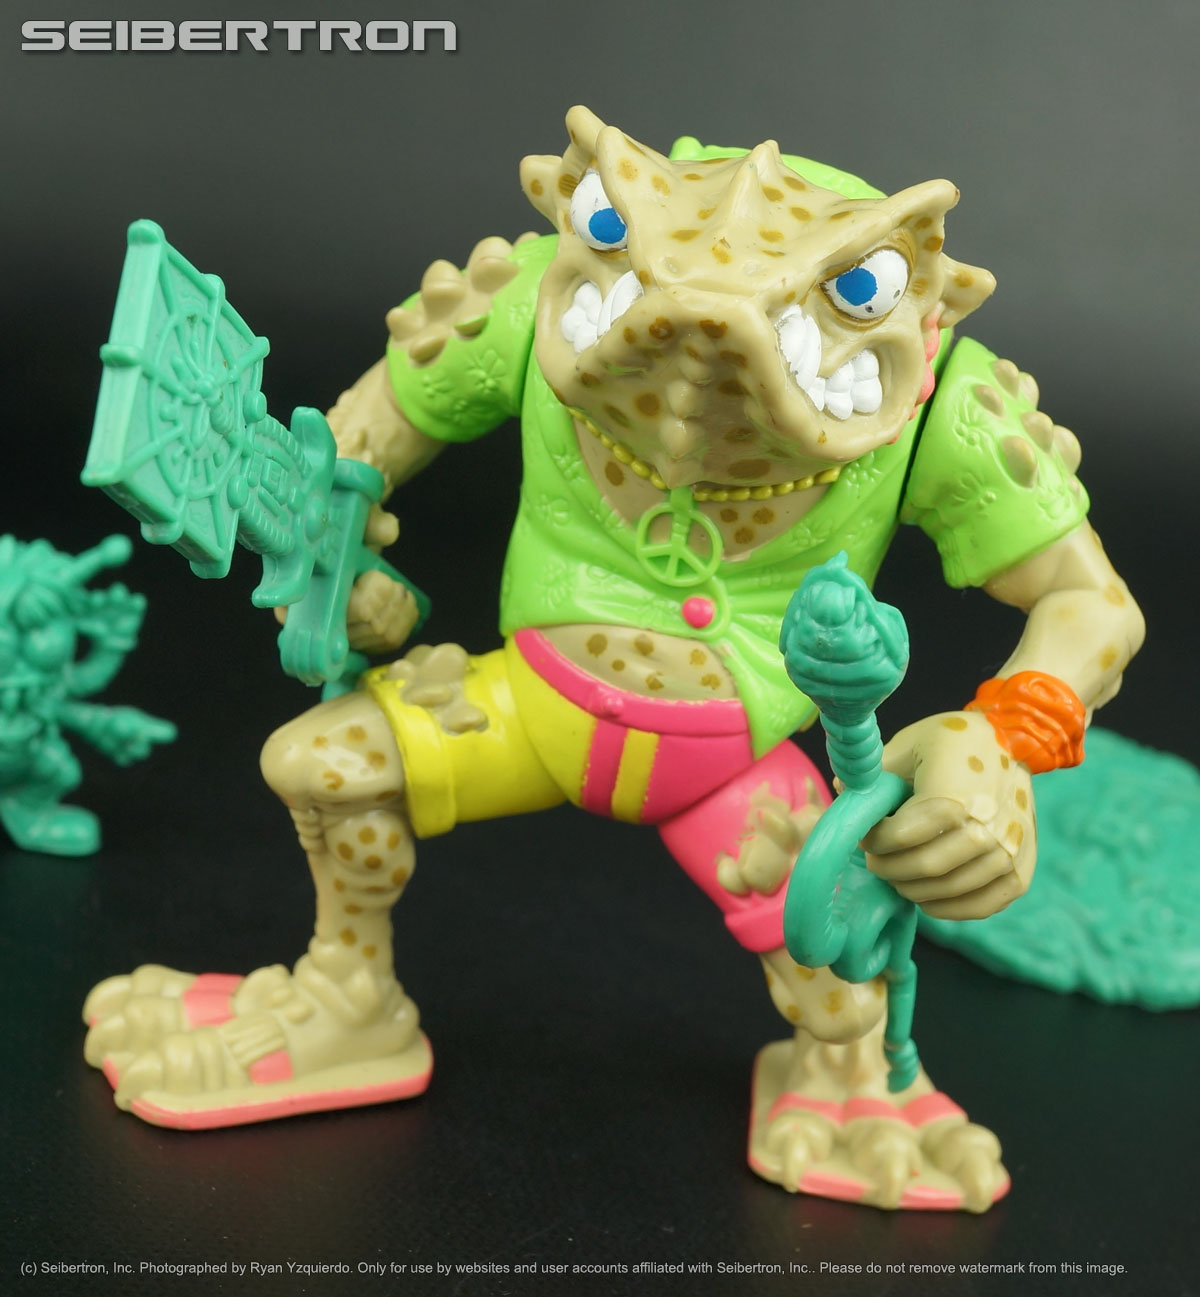 Teenage Mutant Ninja Turtles, Masters of the Universe, Transformers, Comic Books, DVDs and more listings from Seibertron.com: NAPOLEON BONAFROG Teenage Mutant Ninja Turtles complete 1990 TMNT LIGHT variant